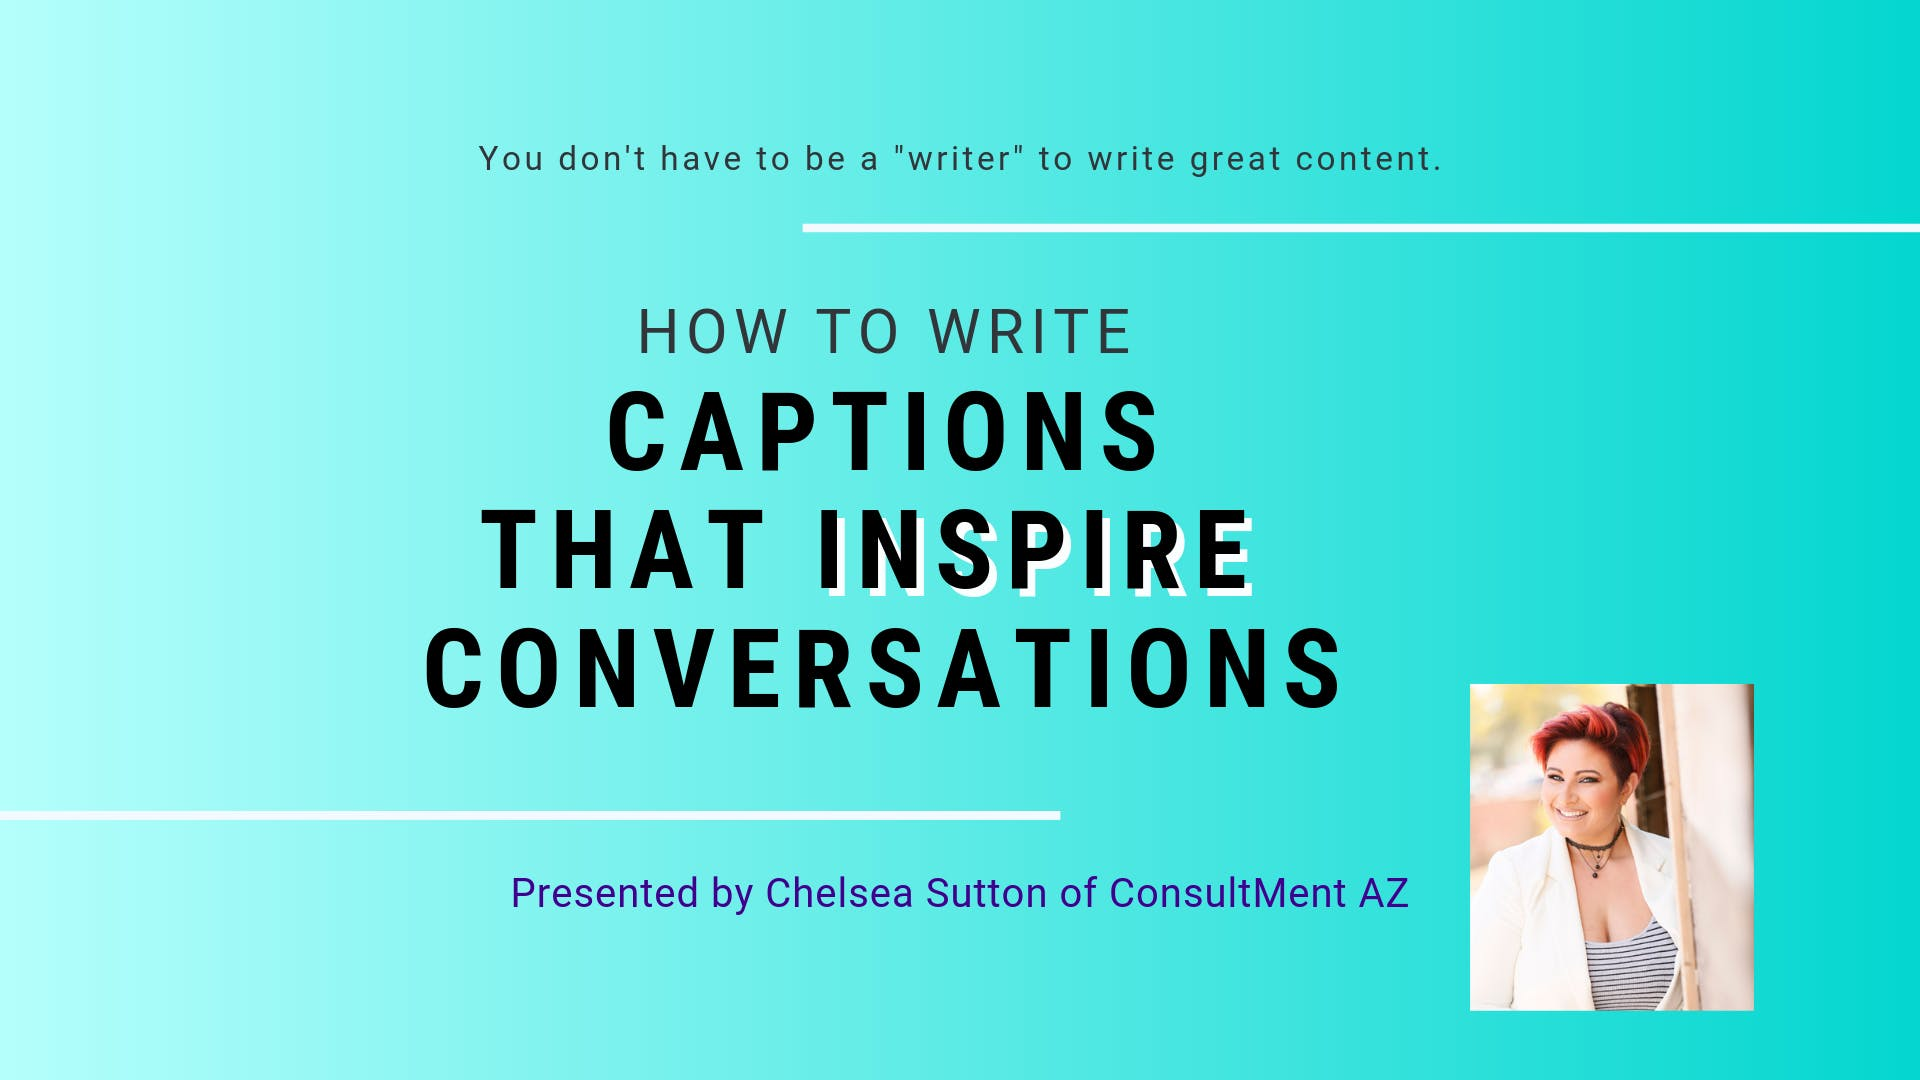 How to Write Captions that Inspire Conversation